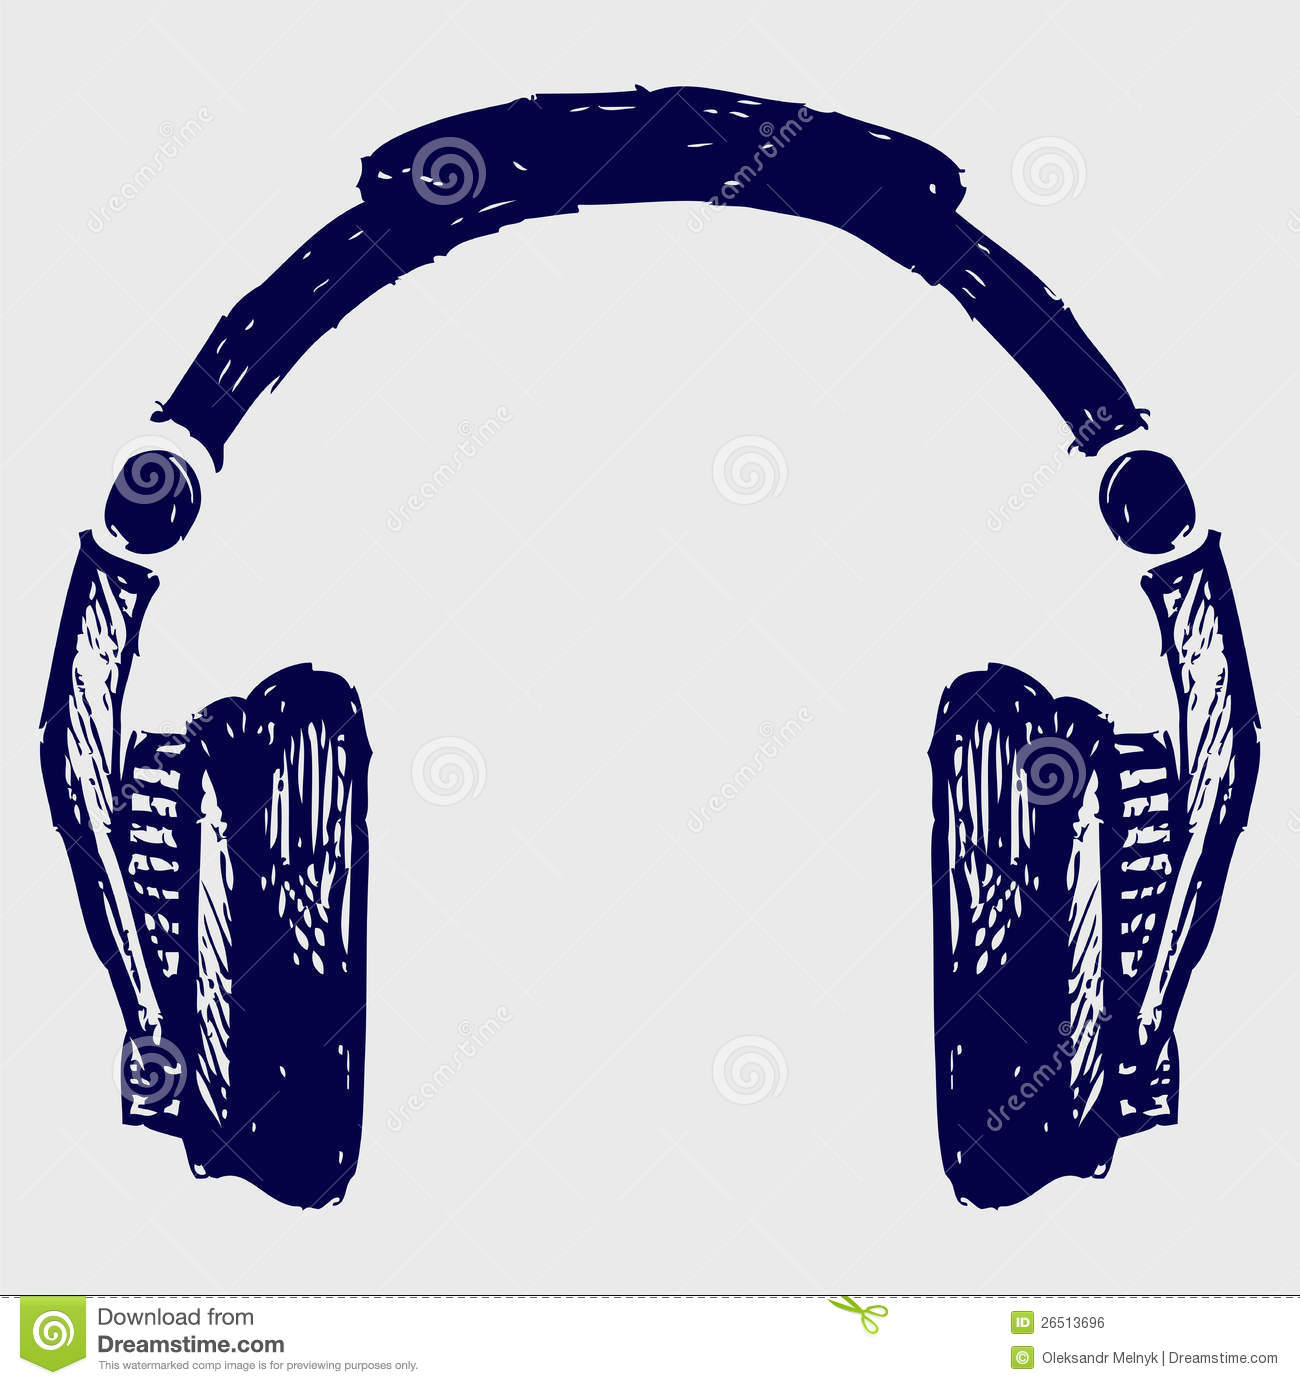 Drawing human ear royalty free stock photography image 25570937 - Headphones Sketch Royalty Free Stock Image